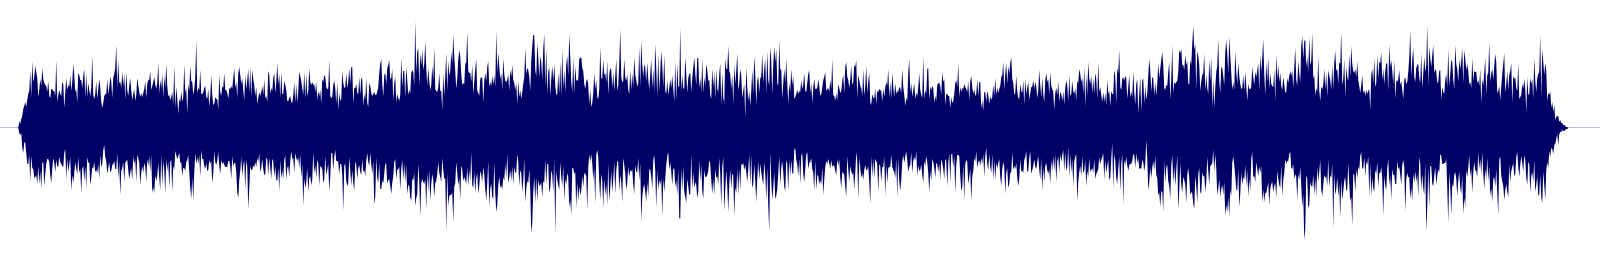 waveform of track #148925